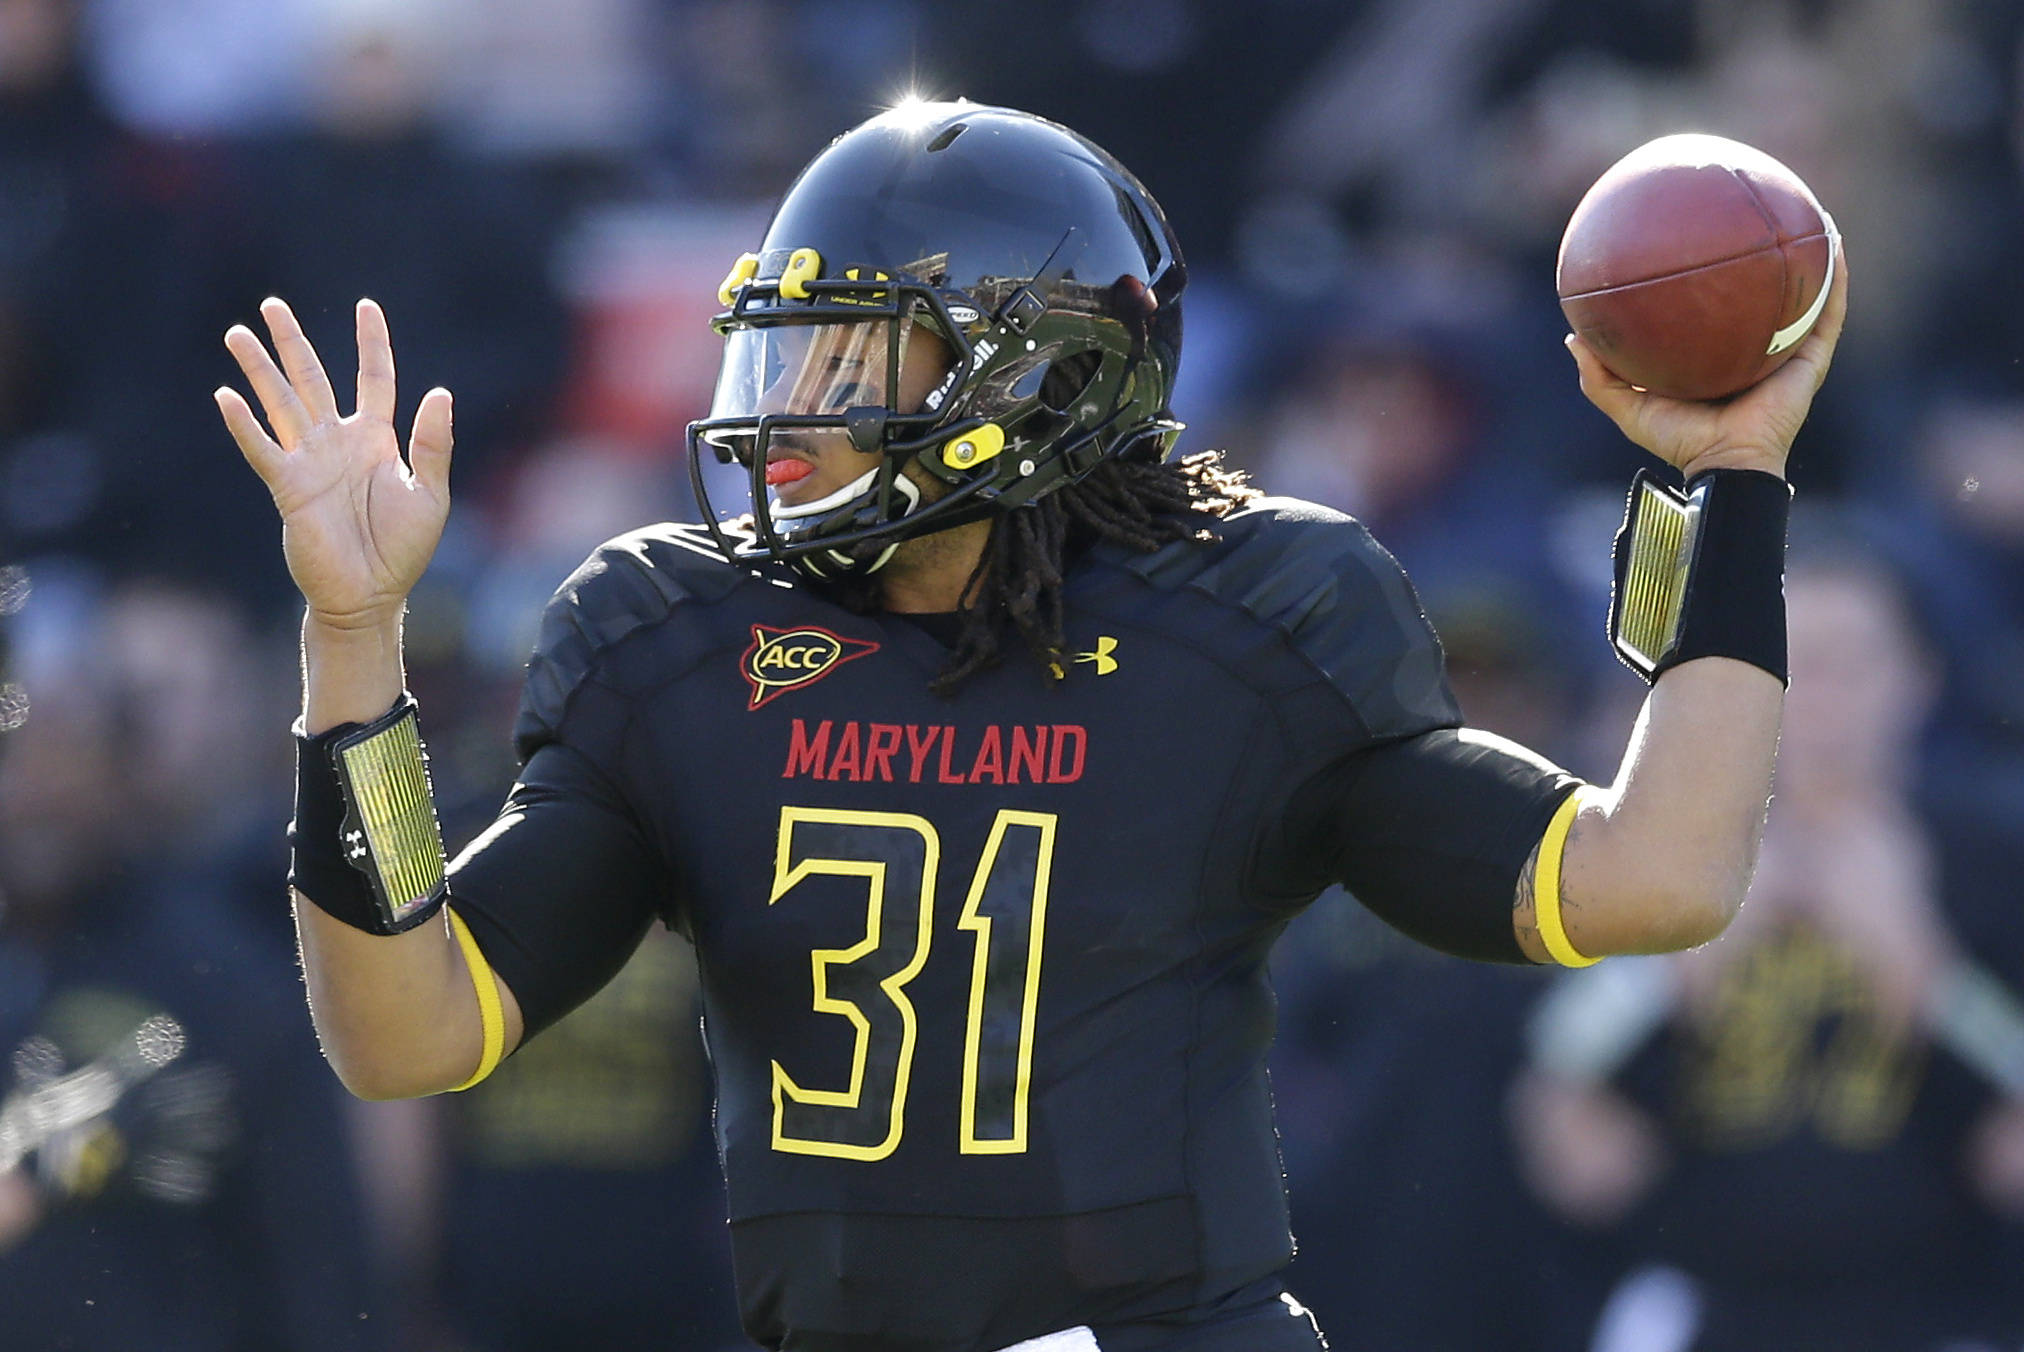 Maryland quarterback Shawn Petty throws to a receiver in the first half of an NCAA college football game against Florida State in College Park, Md., Saturday, Nov. 17, 2012. (AP Photo/Patrick Semansky)